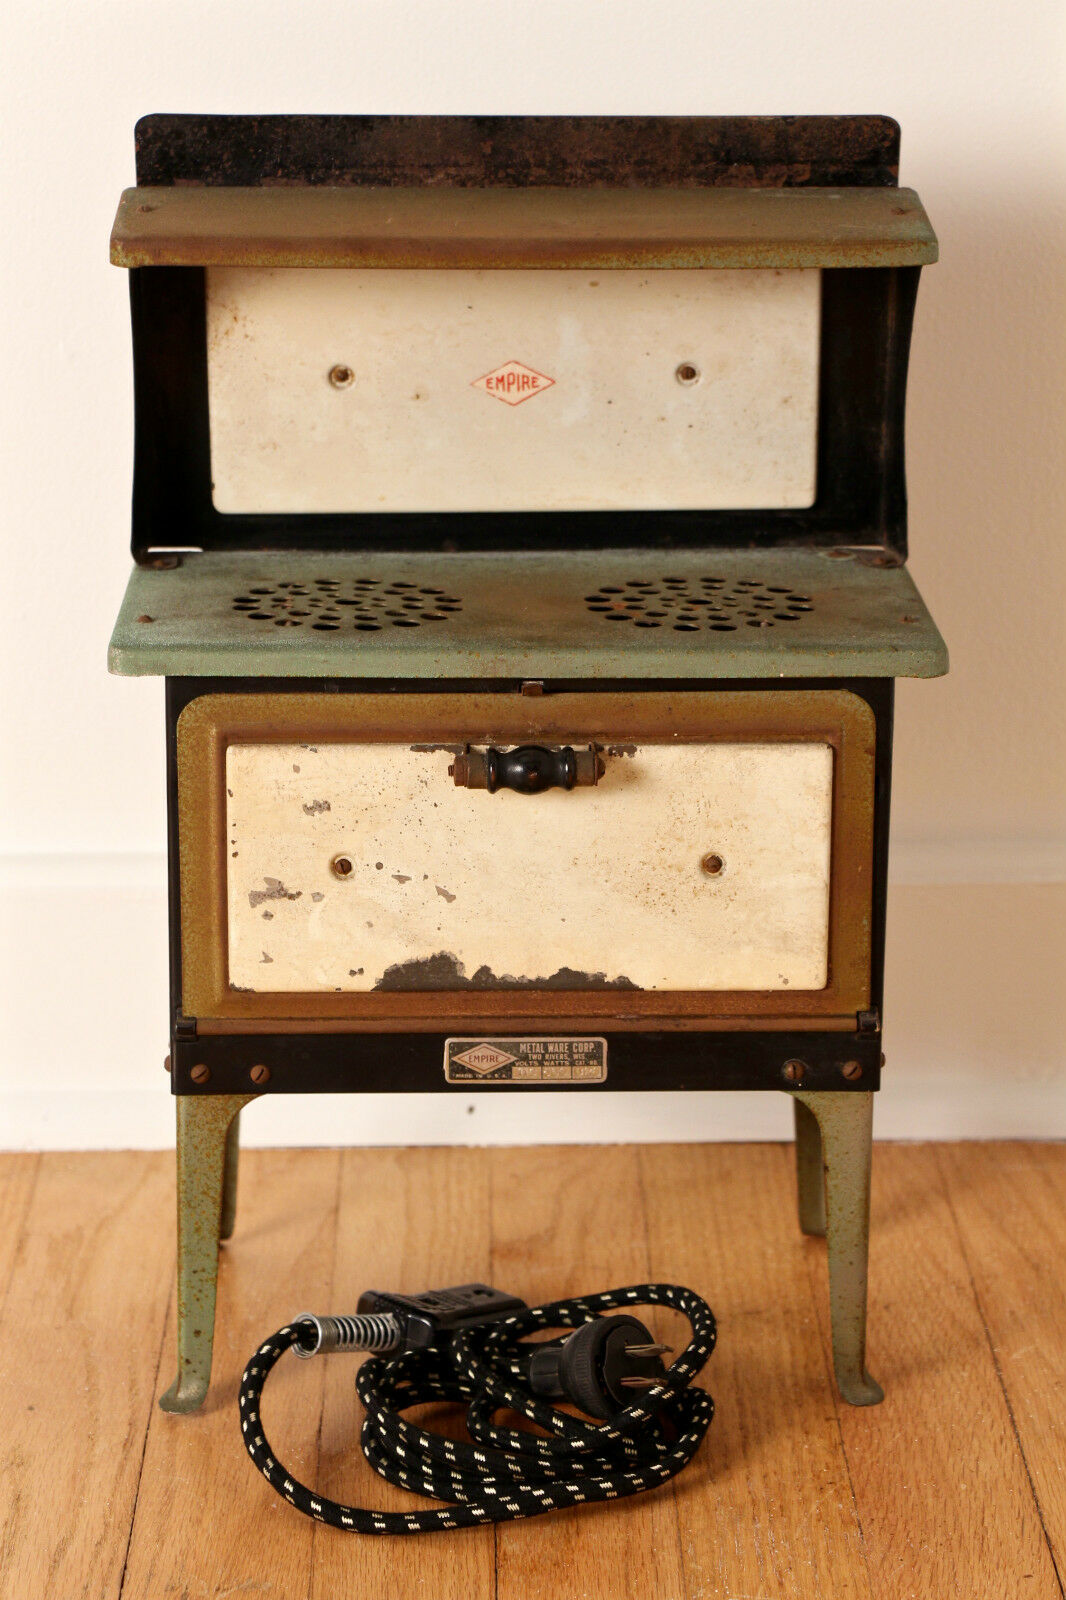 Empire Metal Ware leksak Stove Early to Midd 20th C.